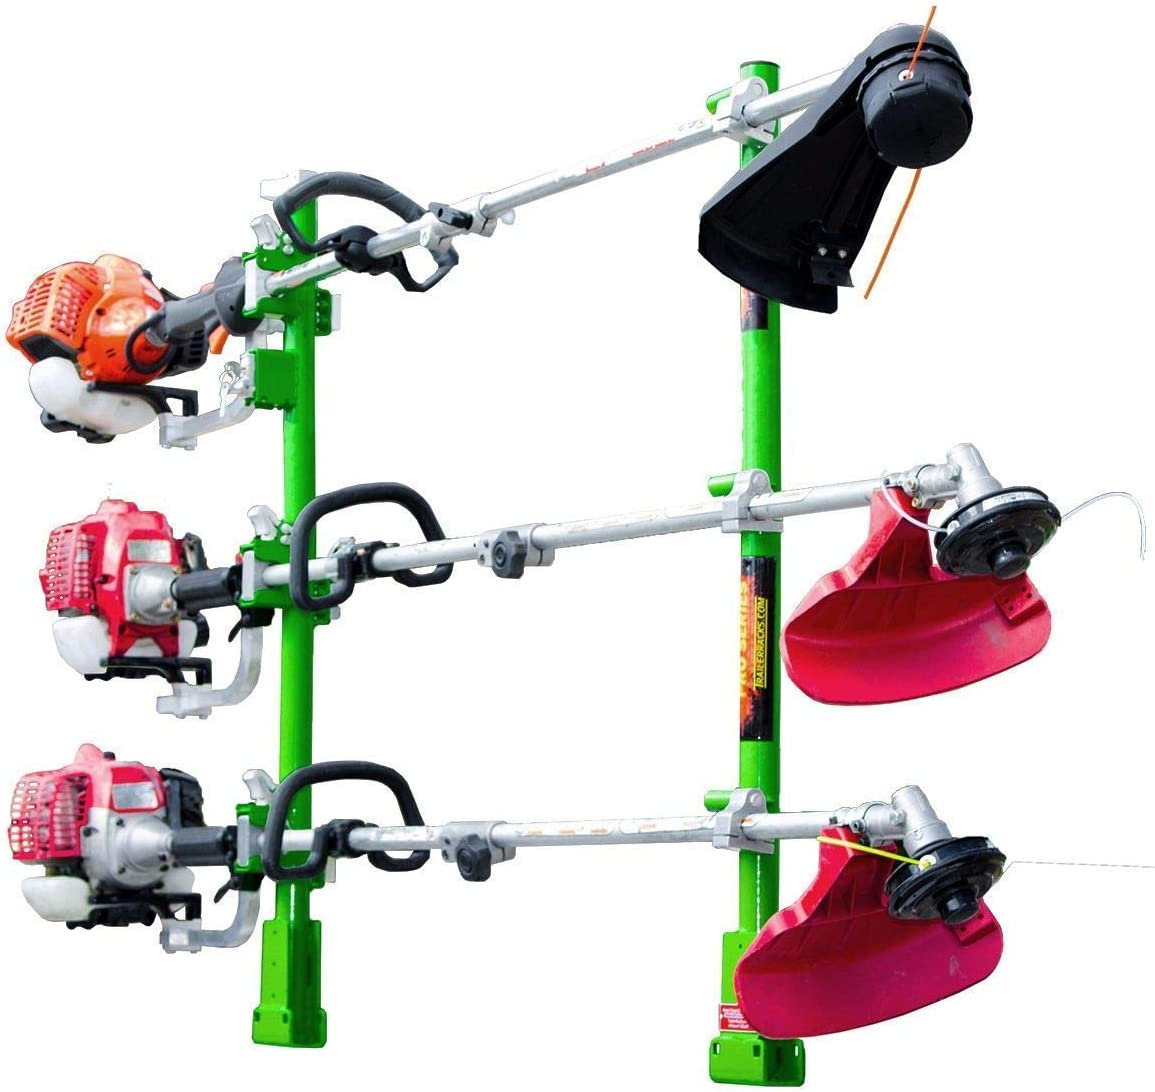 Green Touch Pro Series Version 3 Three Position Trimmer Rack